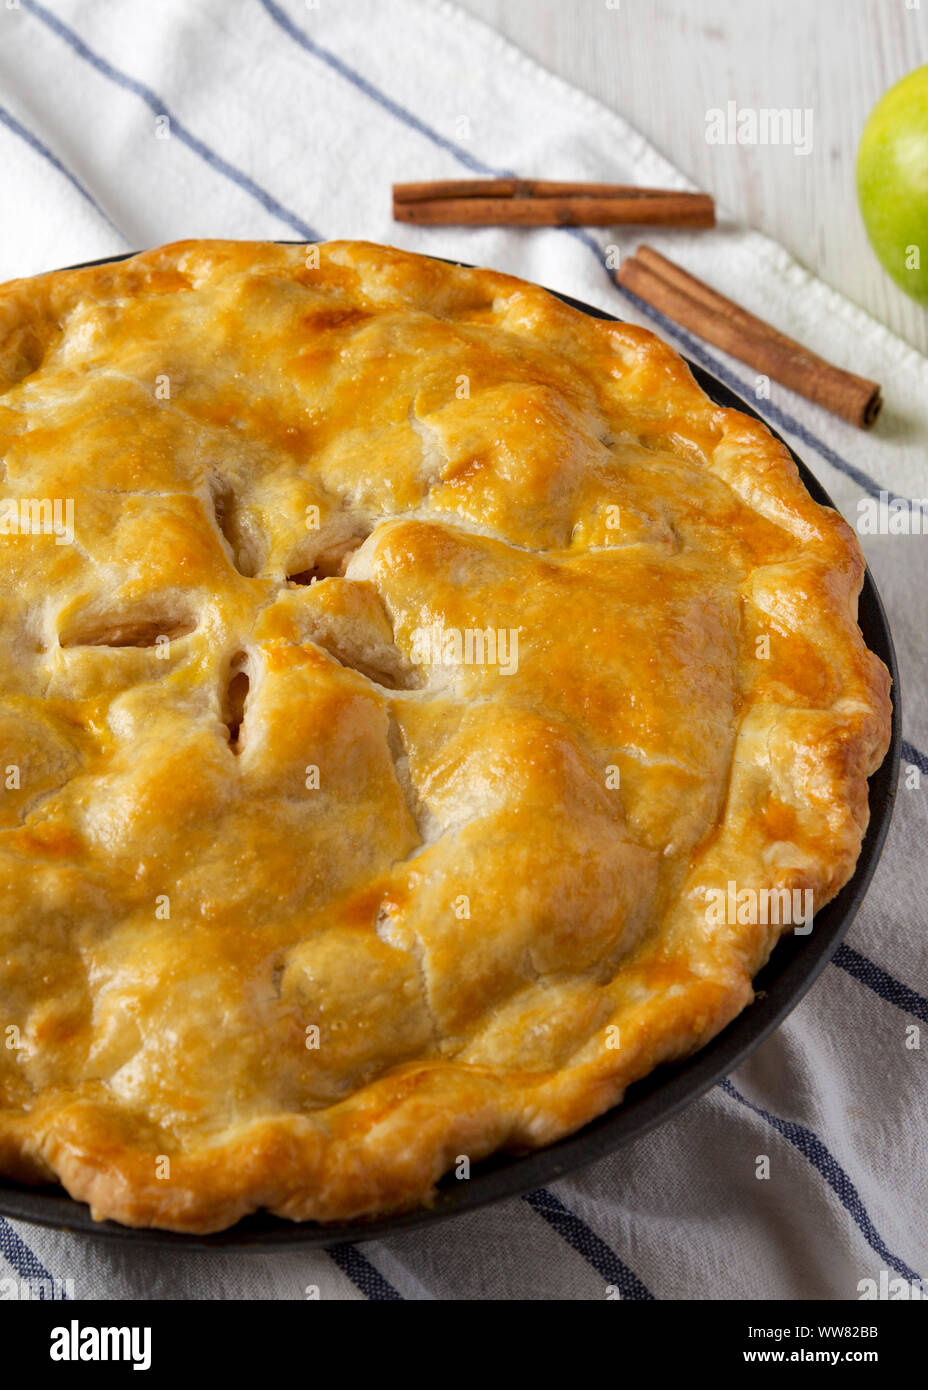 Homemade apple pie on cloth, side view. Close-up. Stock Photo